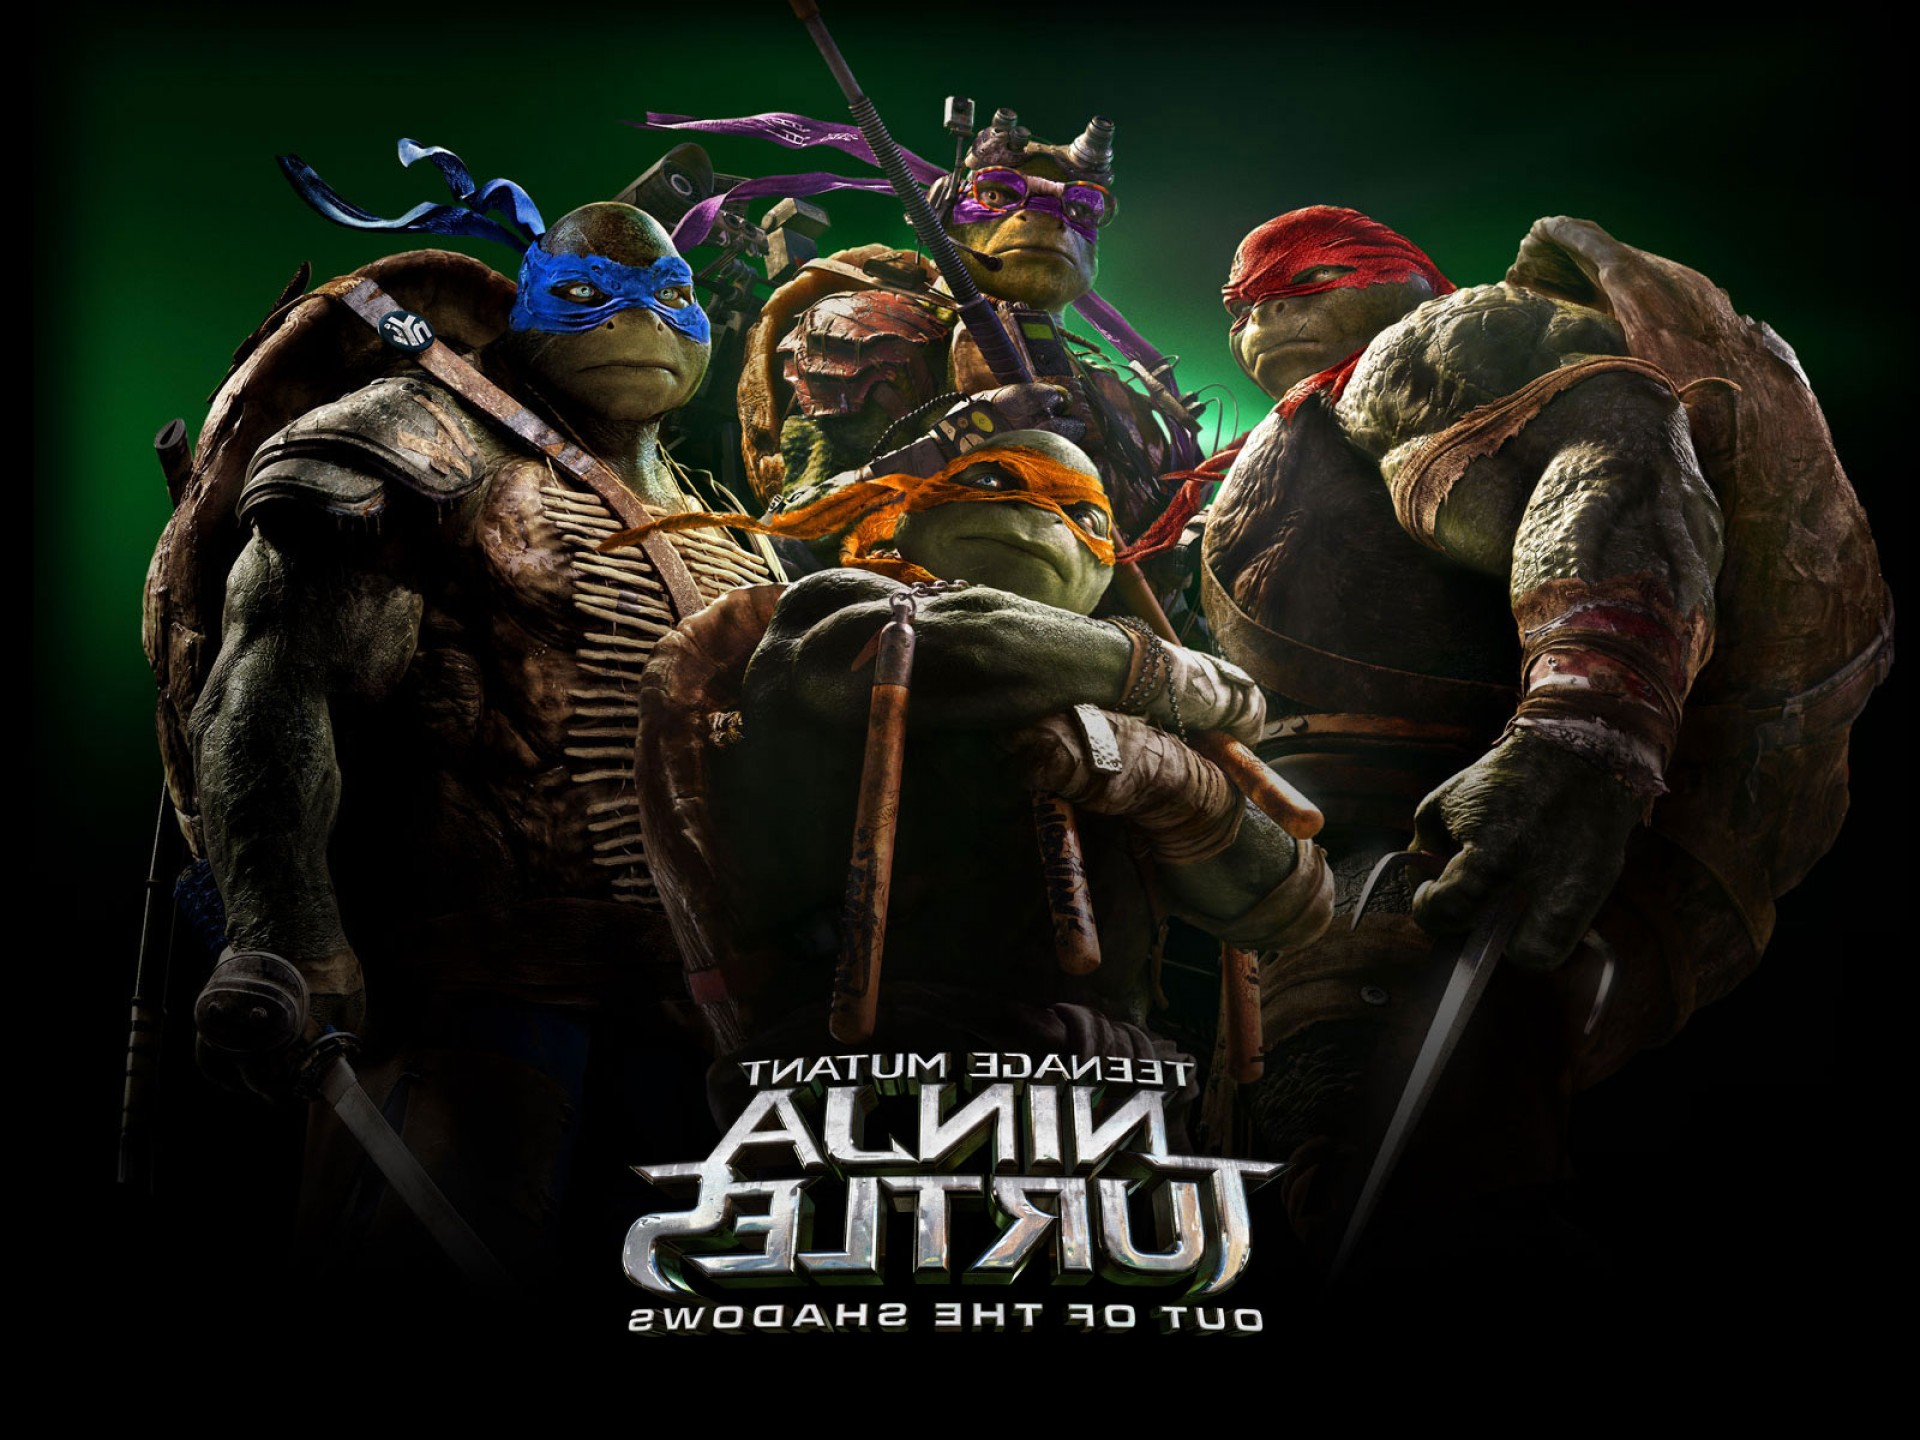 1920x1440 Teenage Mutant Ninja Turtles Tmnt Out Of The Shadows Hd Desktop